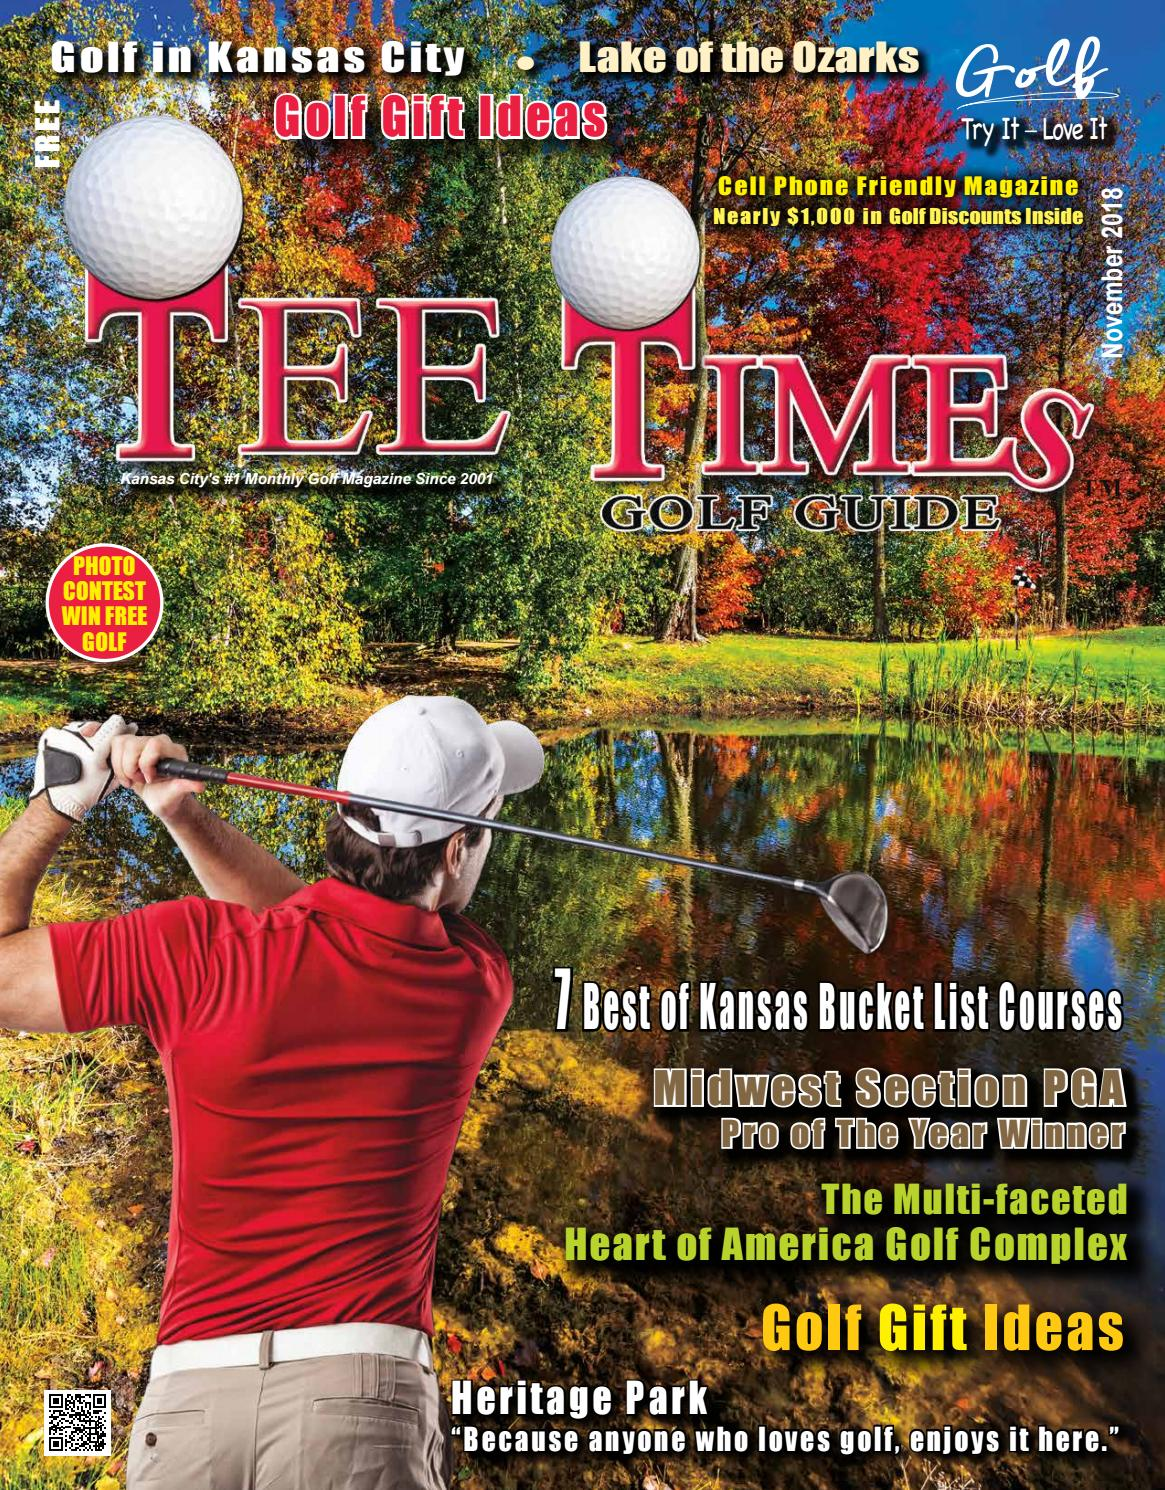 TEE TIMES GOLF GUIDE Magazine November 2018 by TEE TIMES GOLF GUIDE